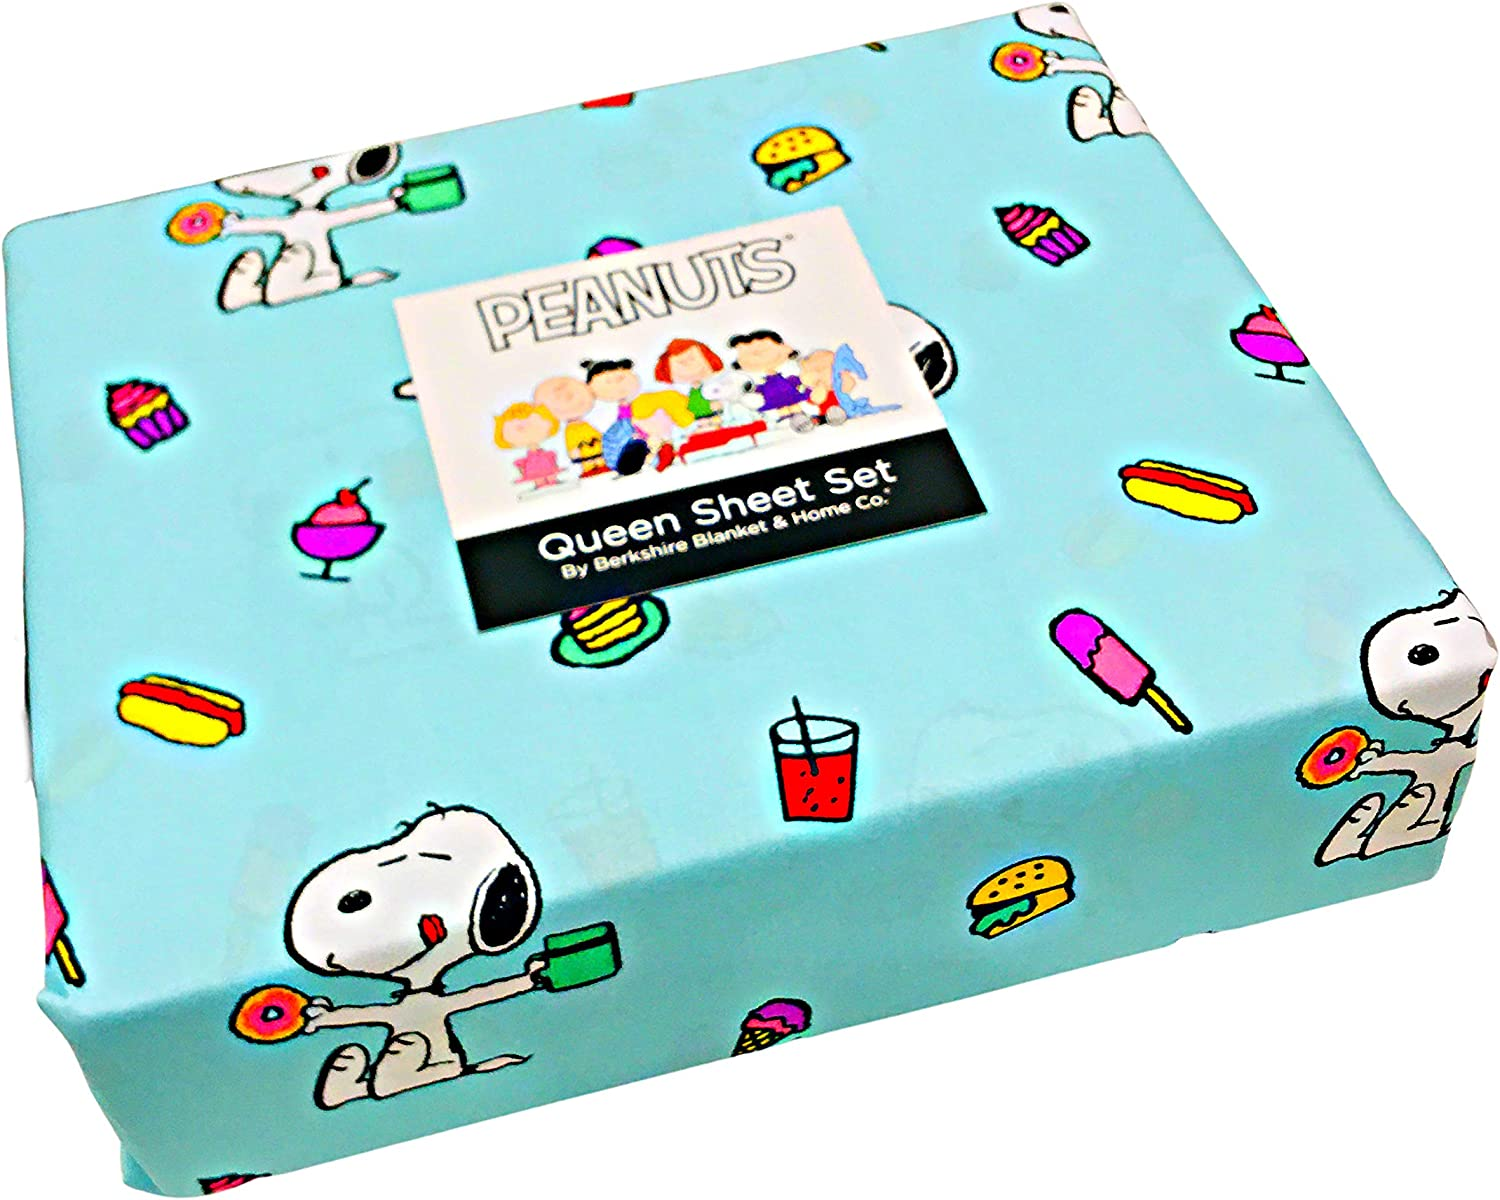 Queen Sheet Set Aqua//Turquoise by Berkshire Peanuts Gang Snoopy /& His Snacks 4-pc